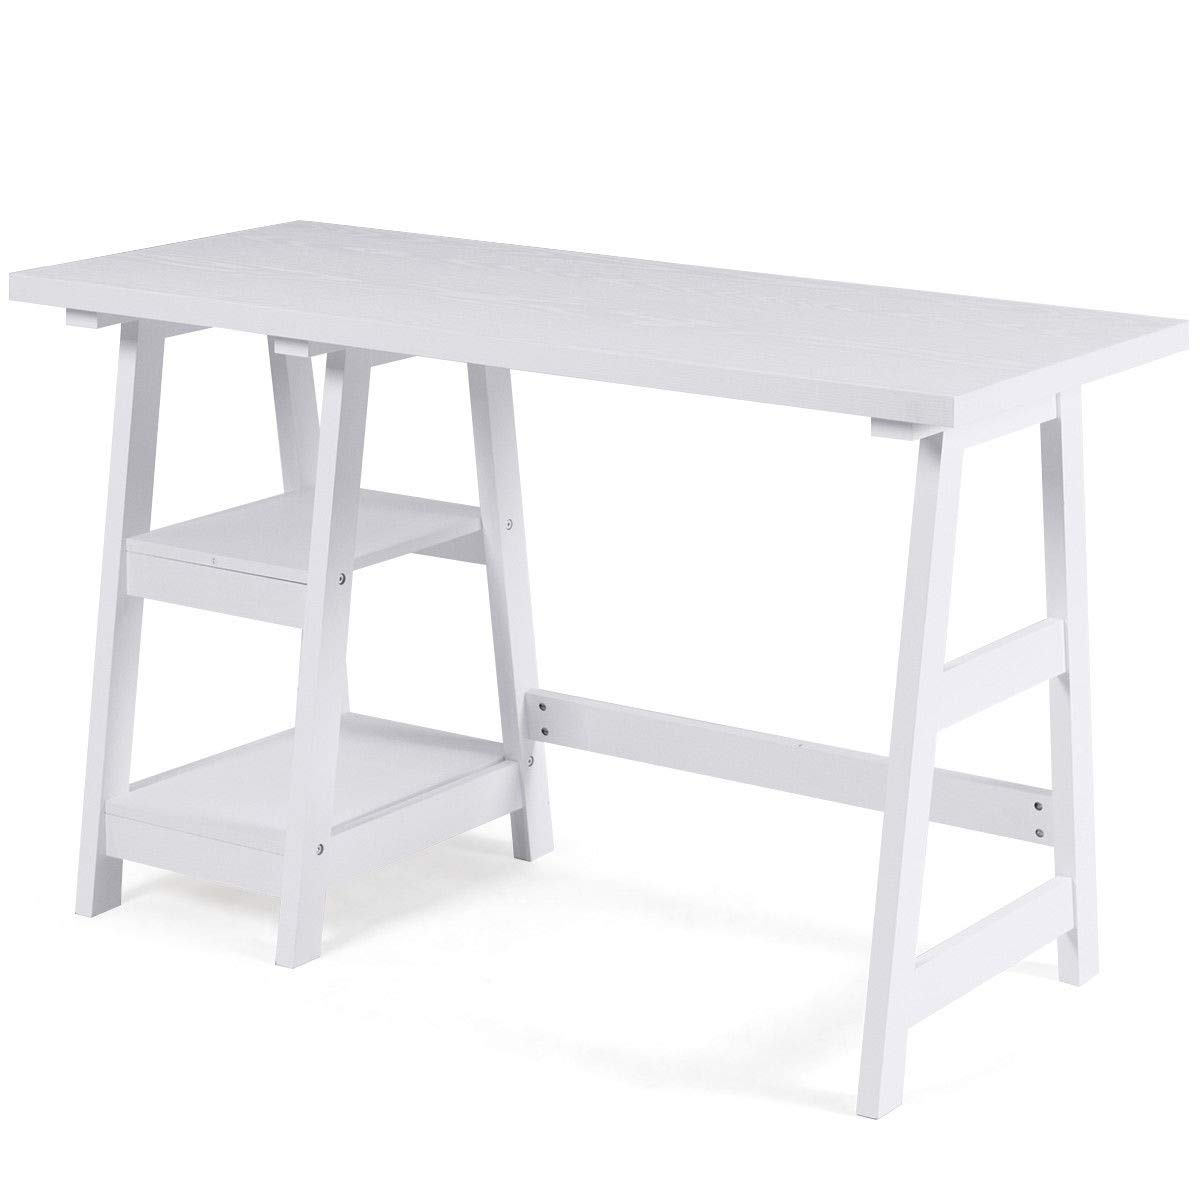 Modern Computer Desk Writing Laptop Table Trestle with 2 Open Tiers Shelves White